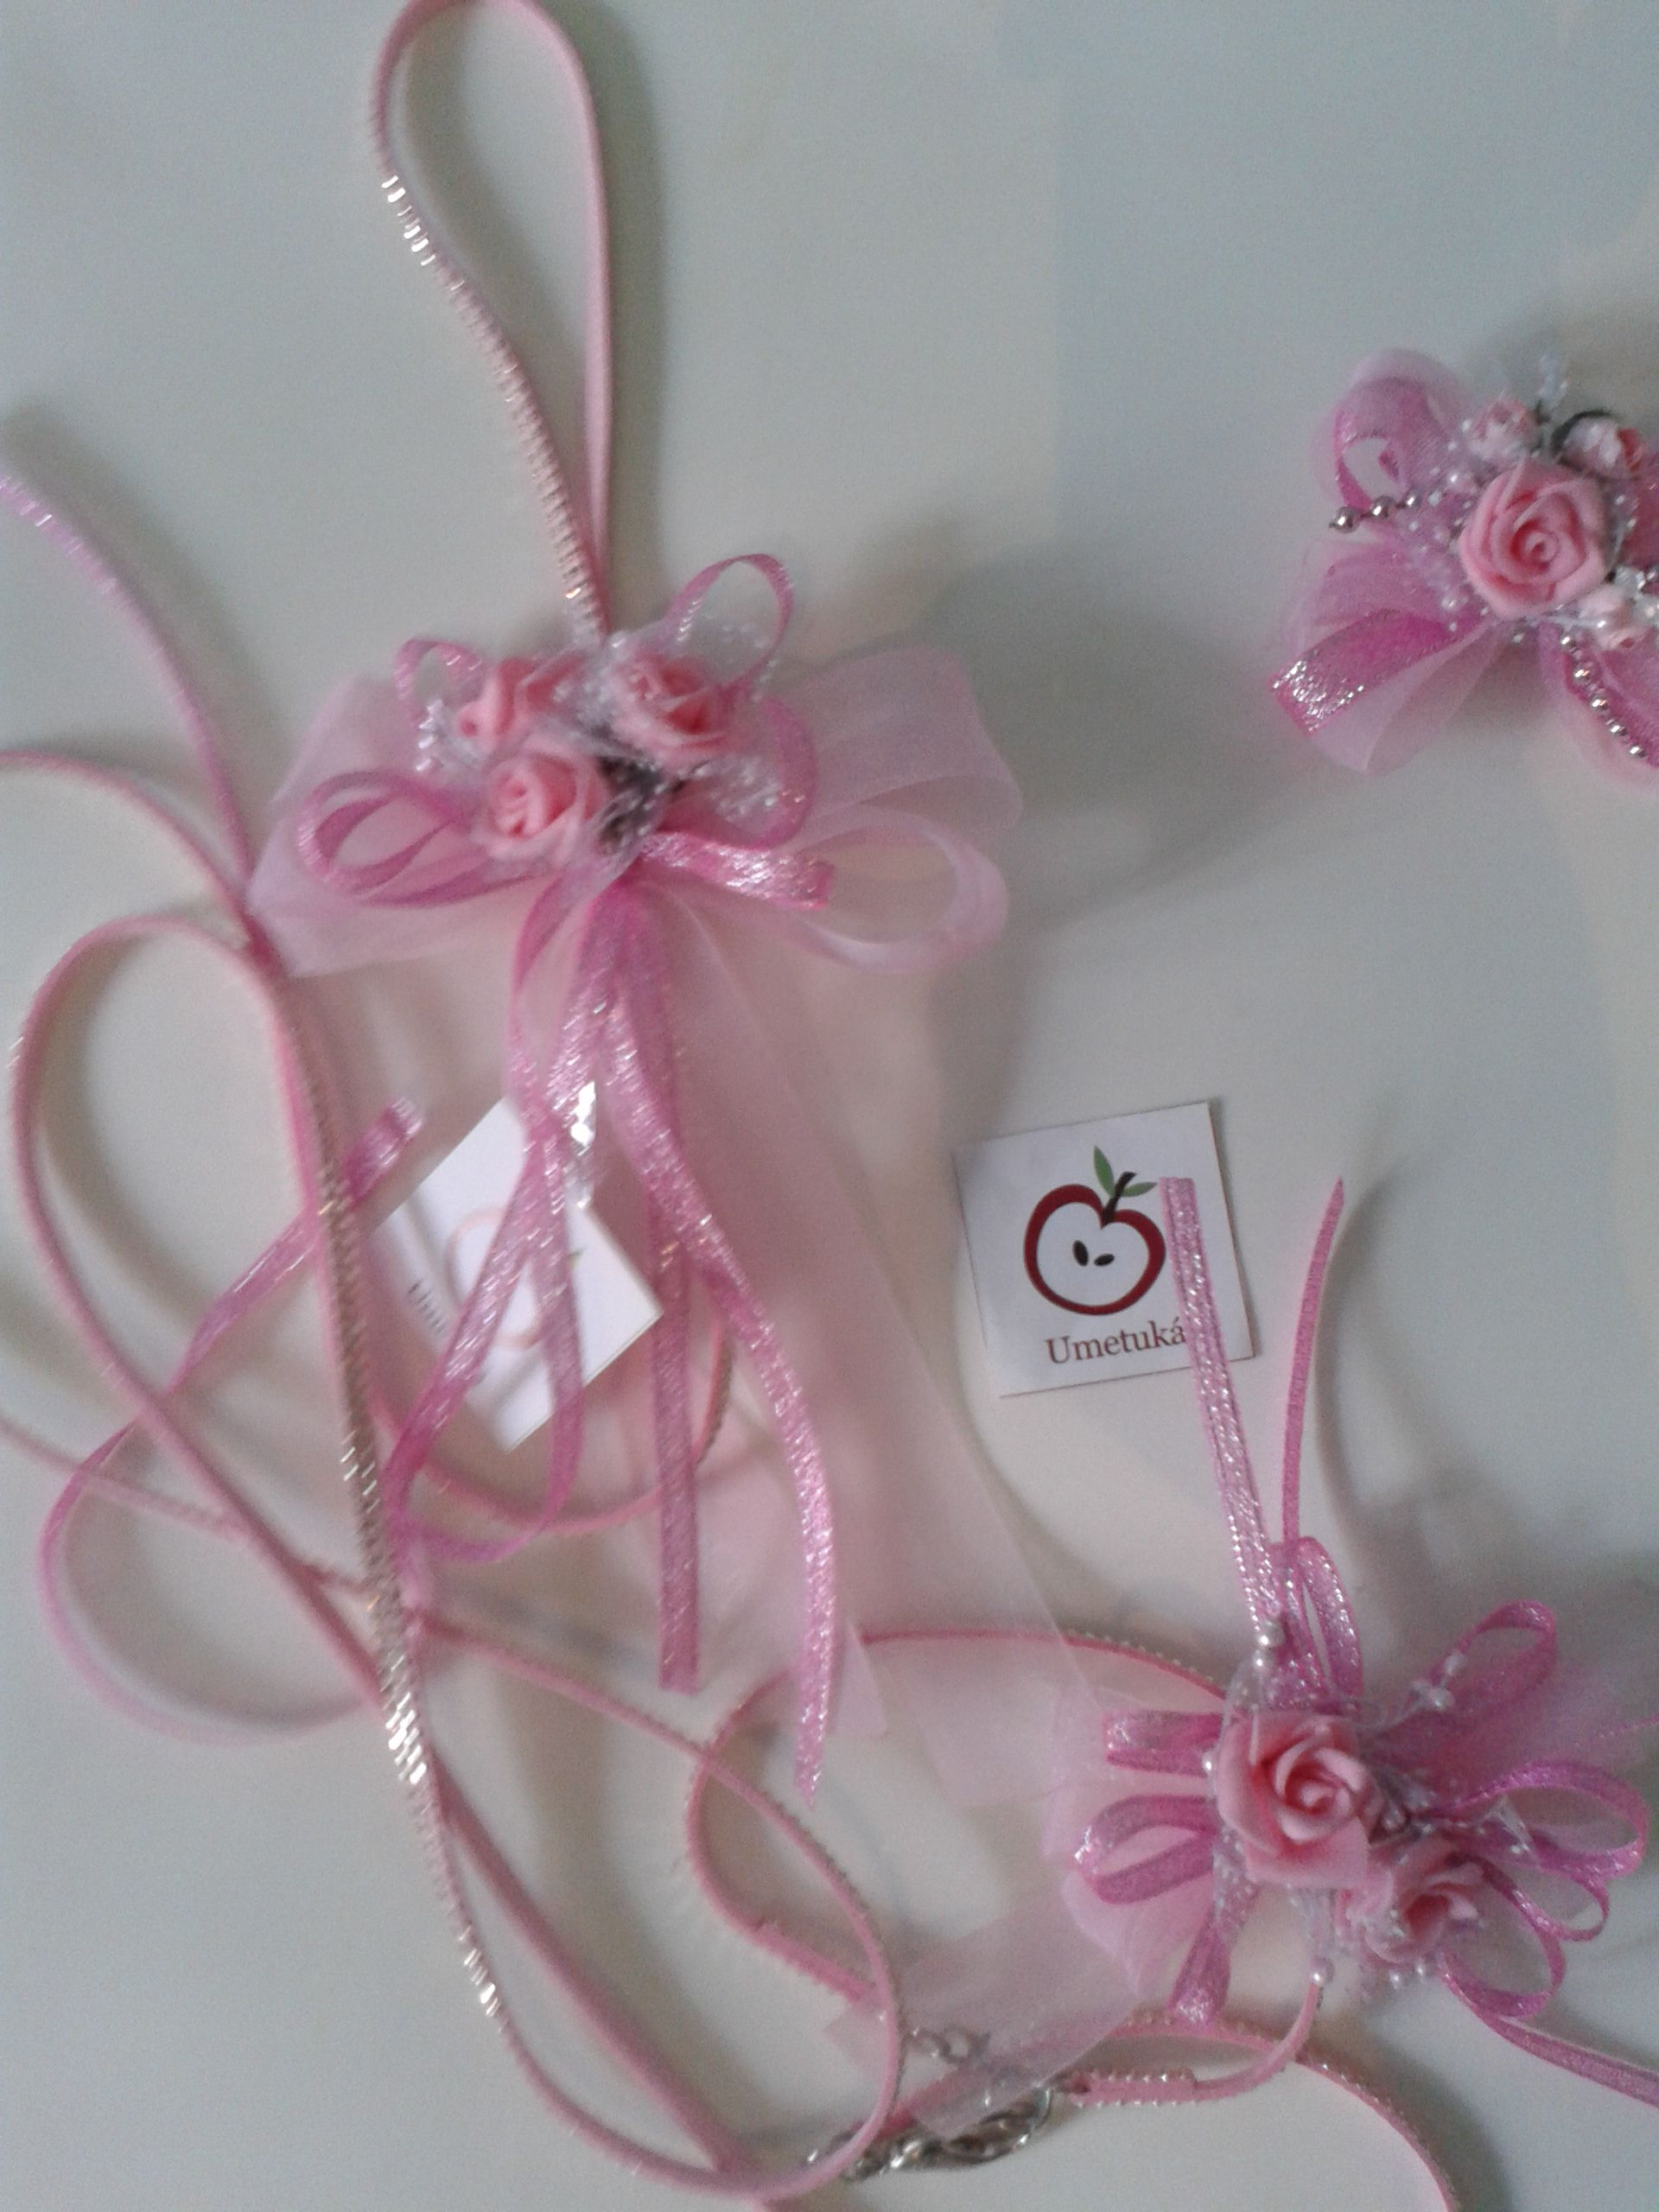 Dog leash and pet bow, for a wedding, correa para perritas con su moños, ideal xa una boda o fiesta...